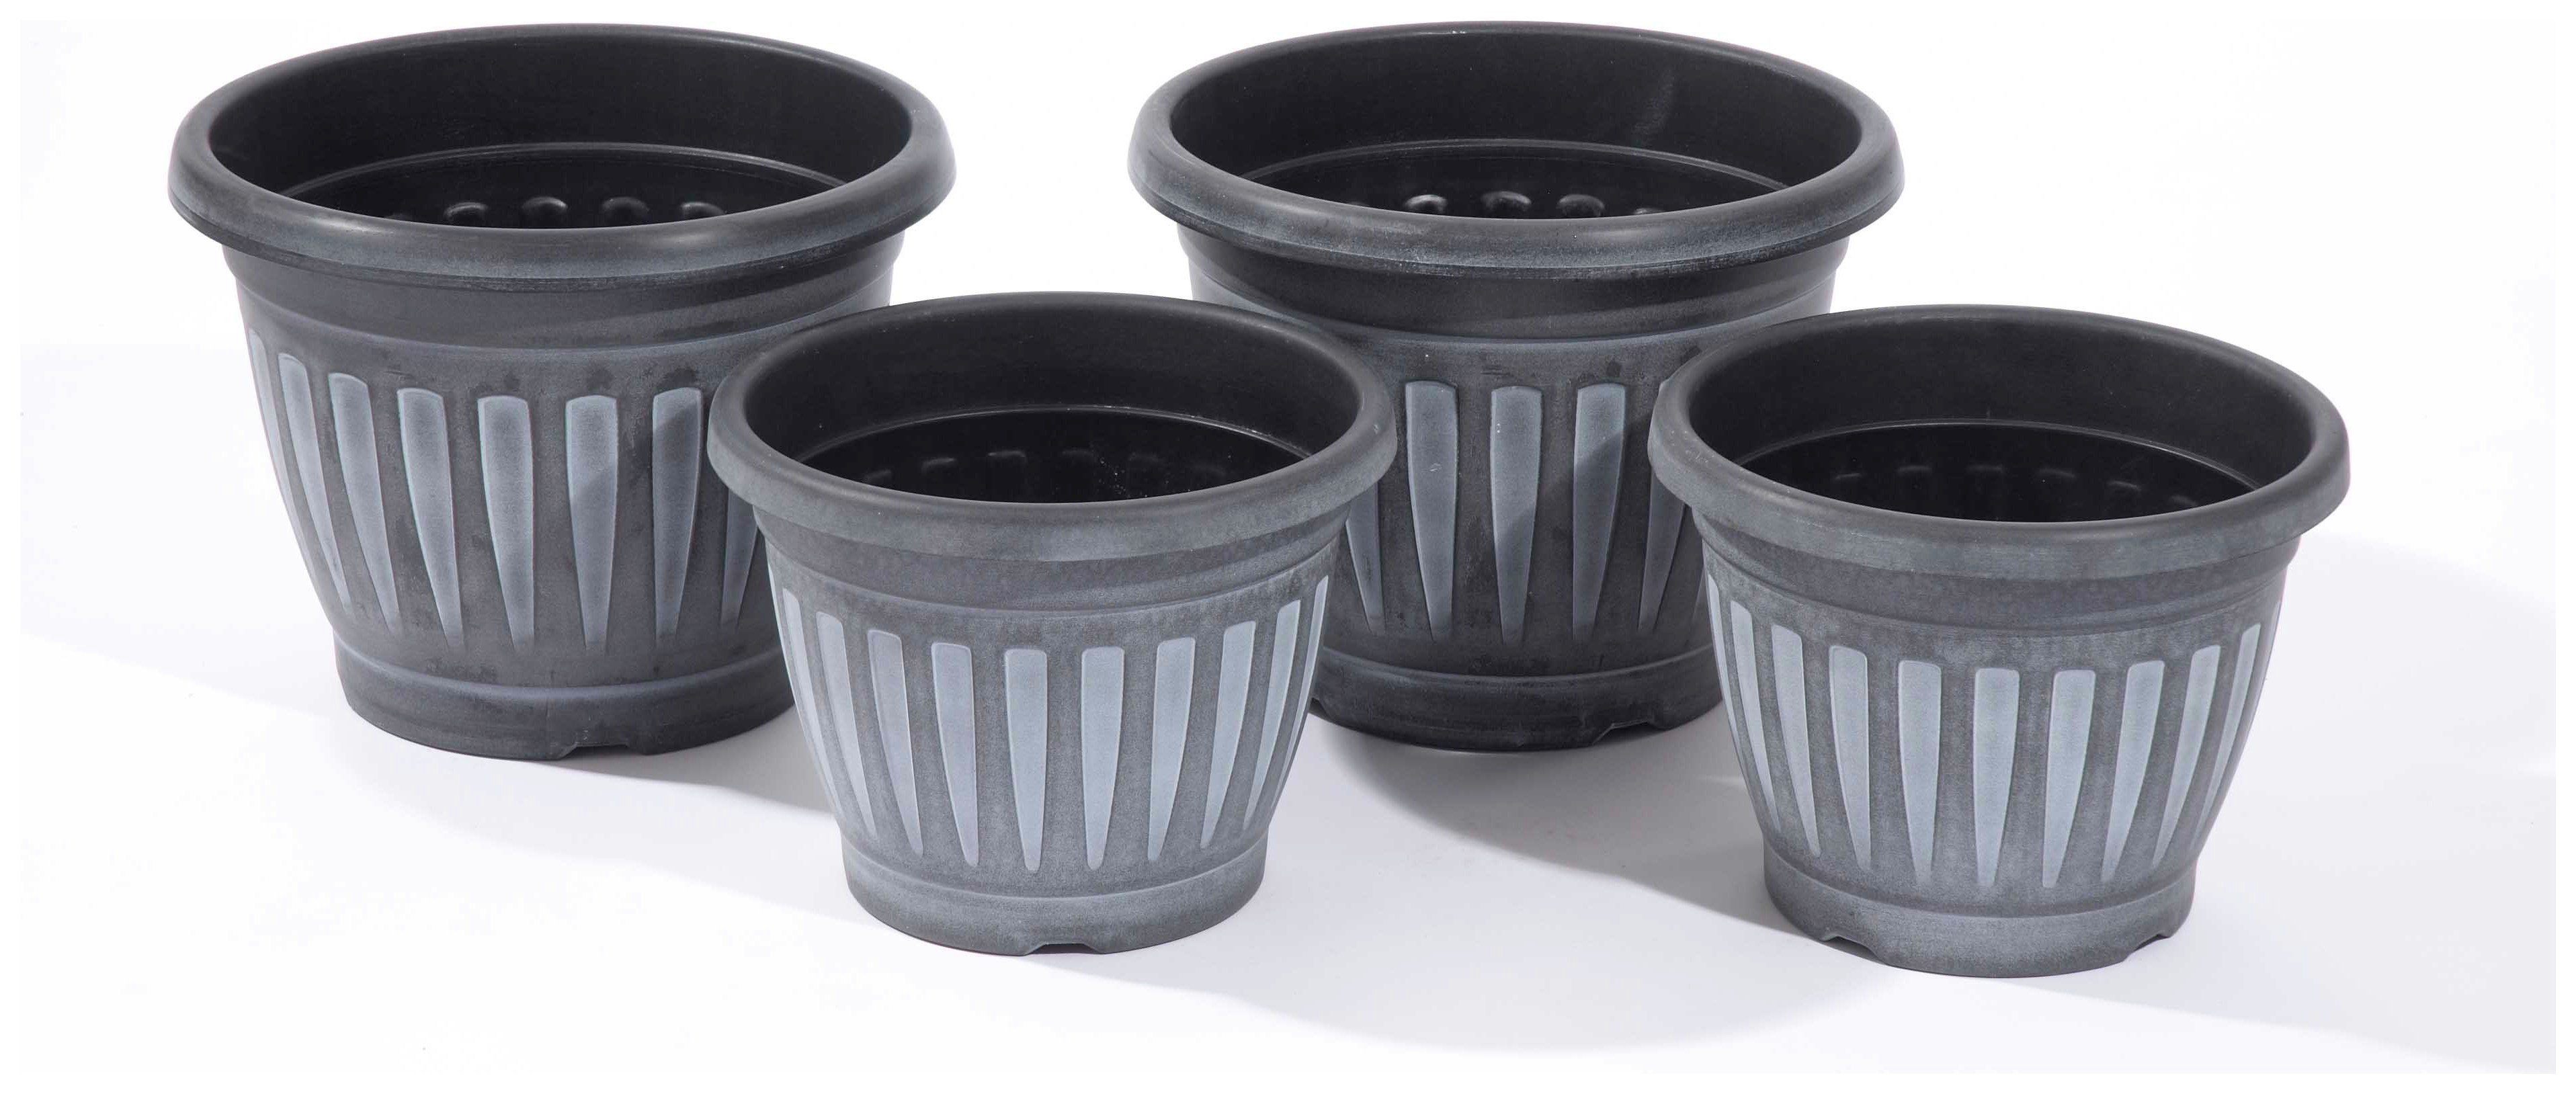 Greenhurst Georgian Planters Pack of 4 - Black and White. lowest price